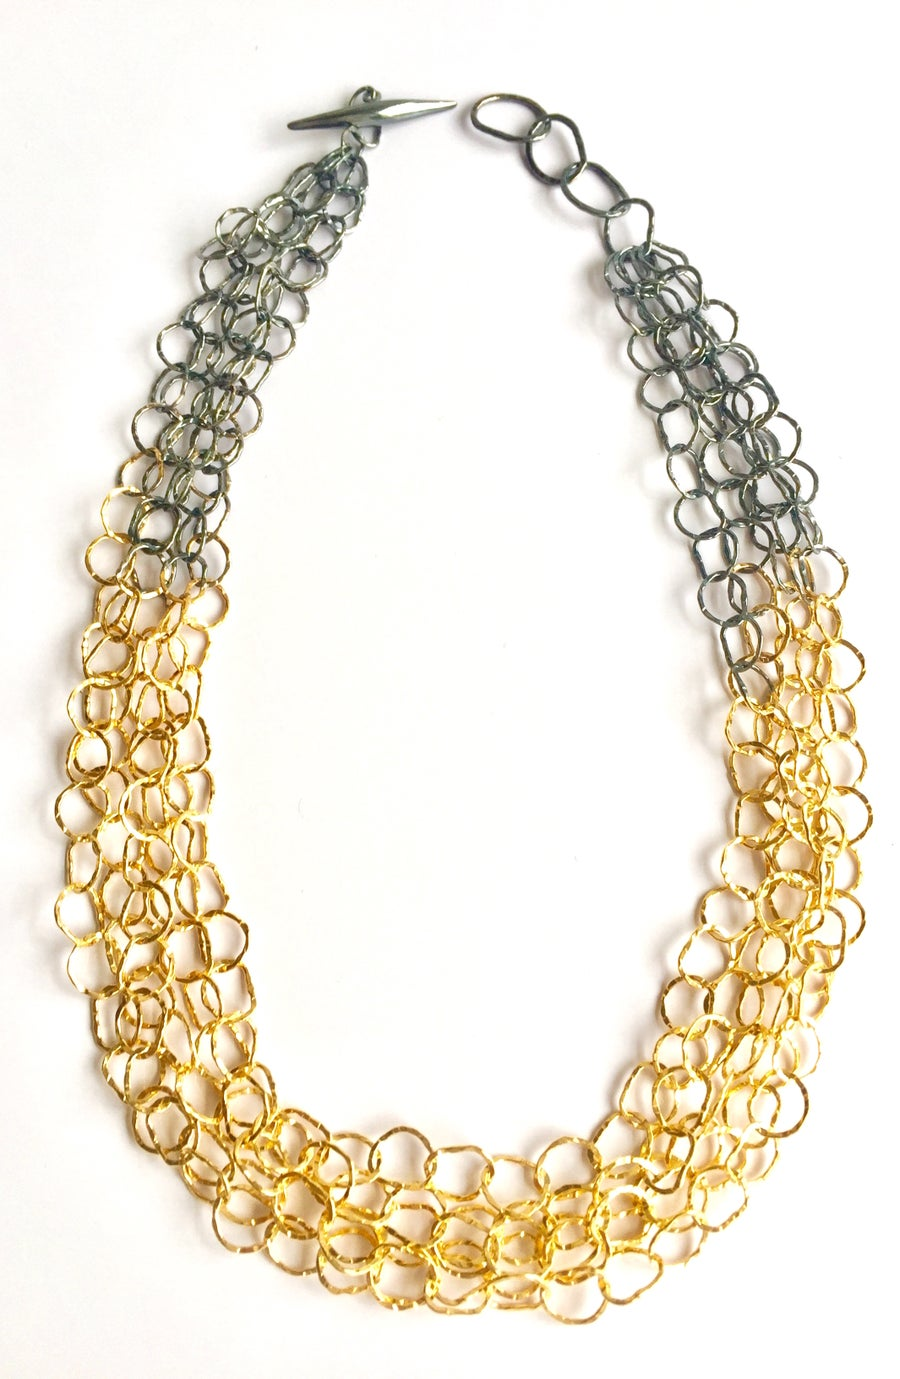 Image of Afiok neckpiece- One of a kind